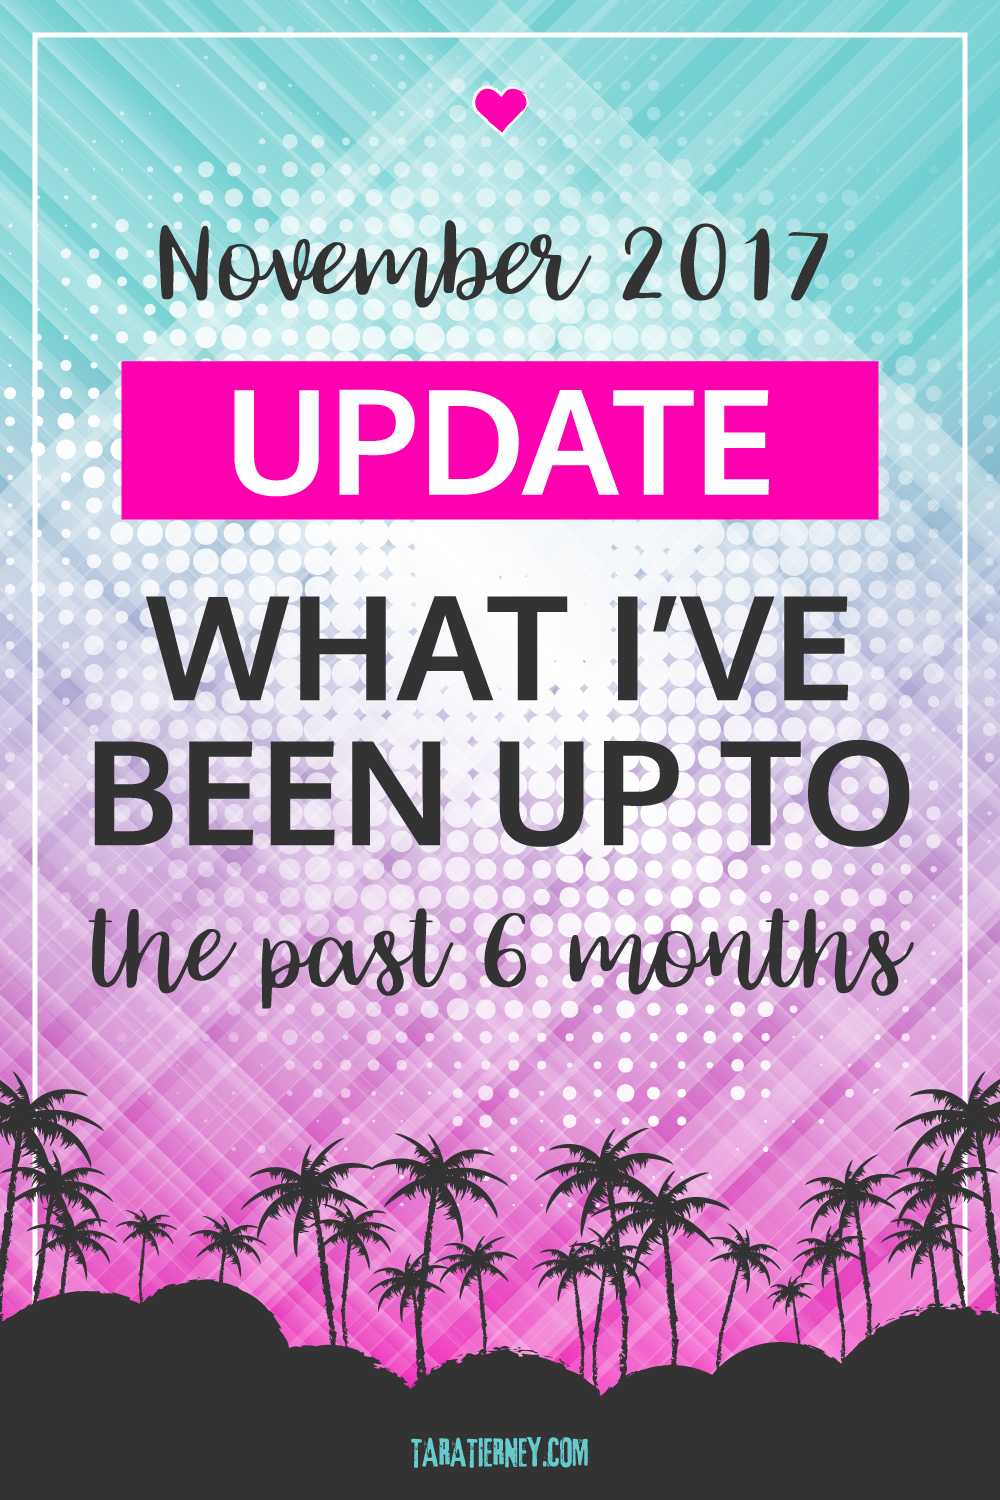 November 2017 Update - What I've been up to the Past 6 Months